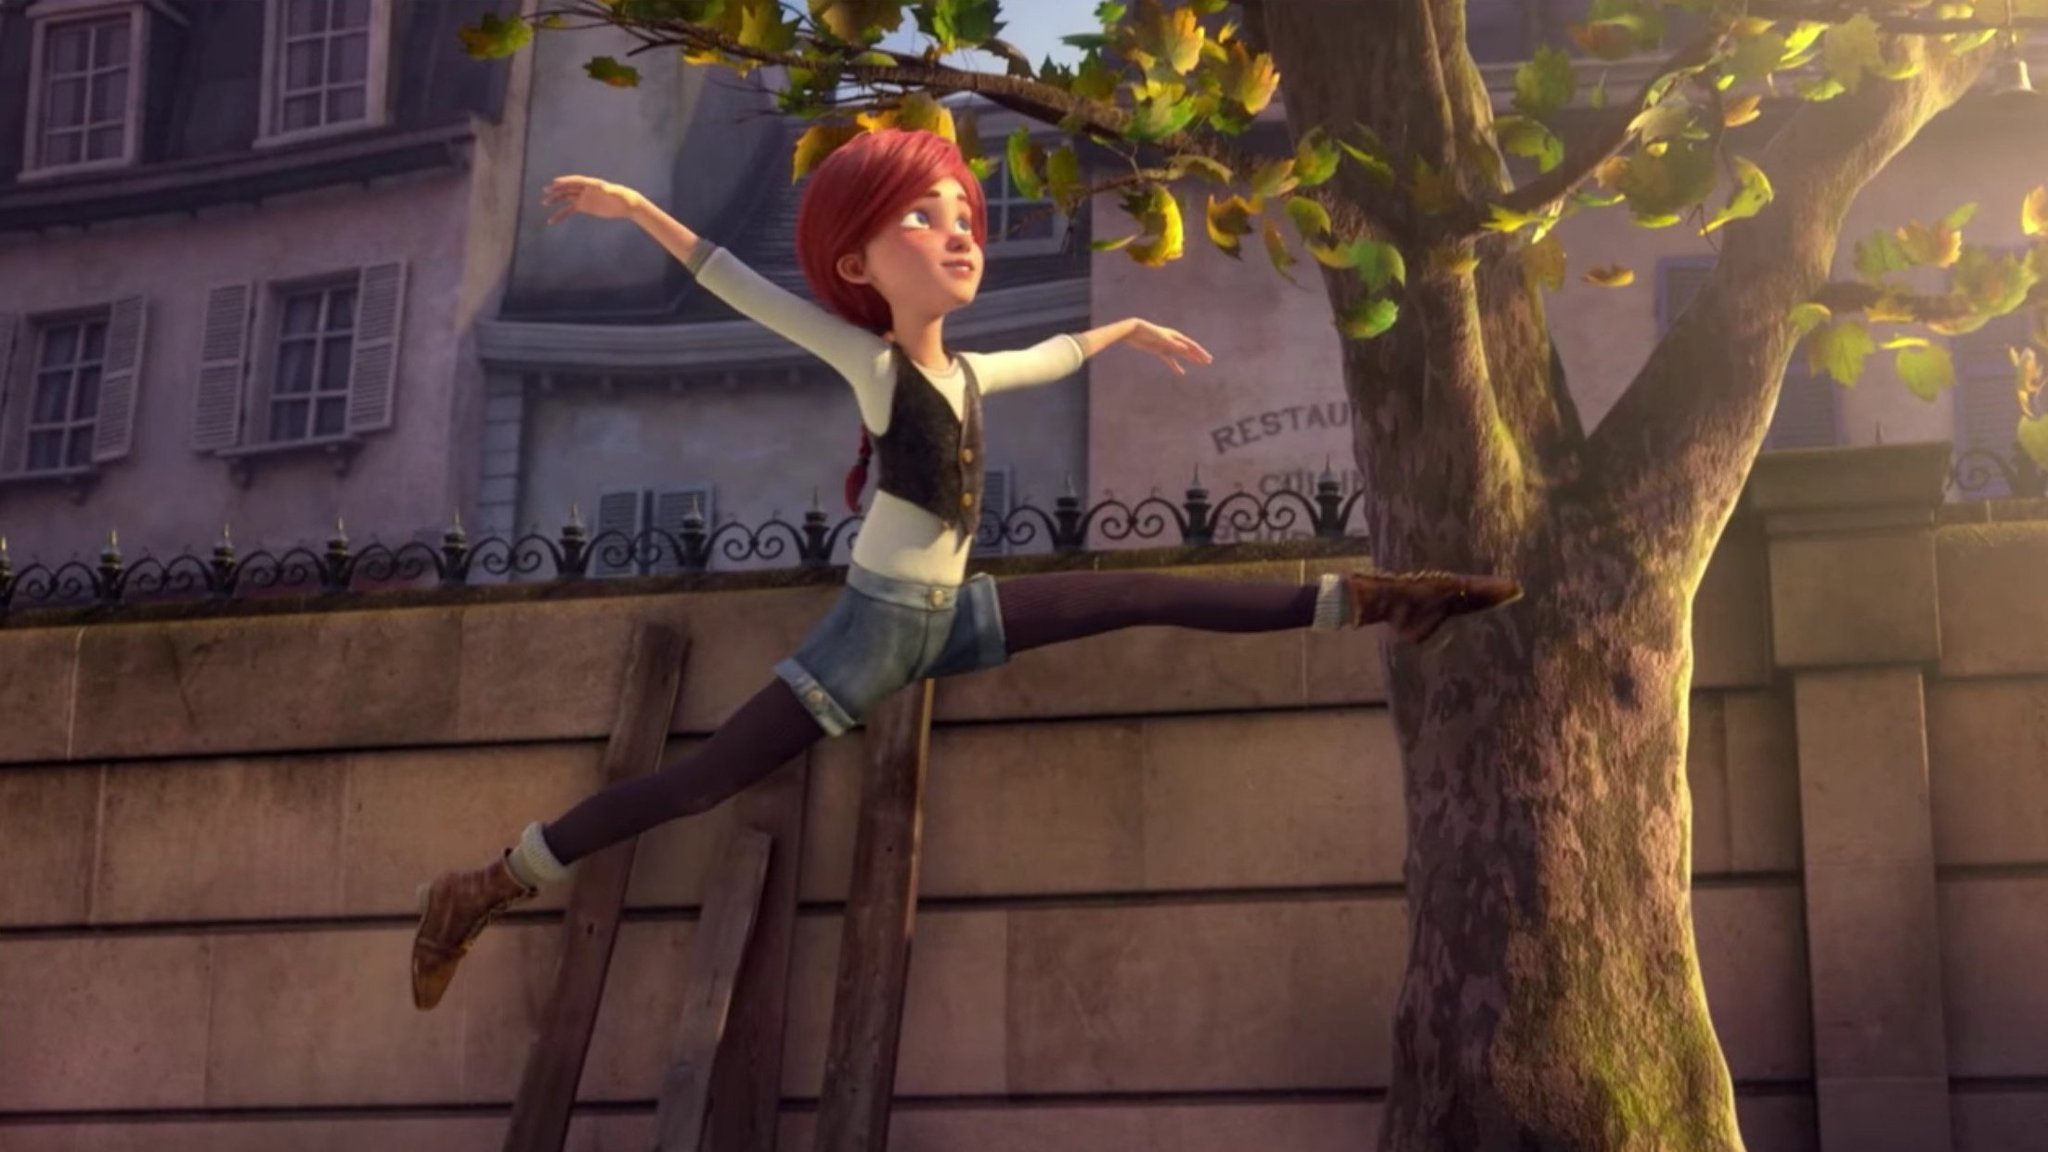 film review ballerina a  ical and visual treat